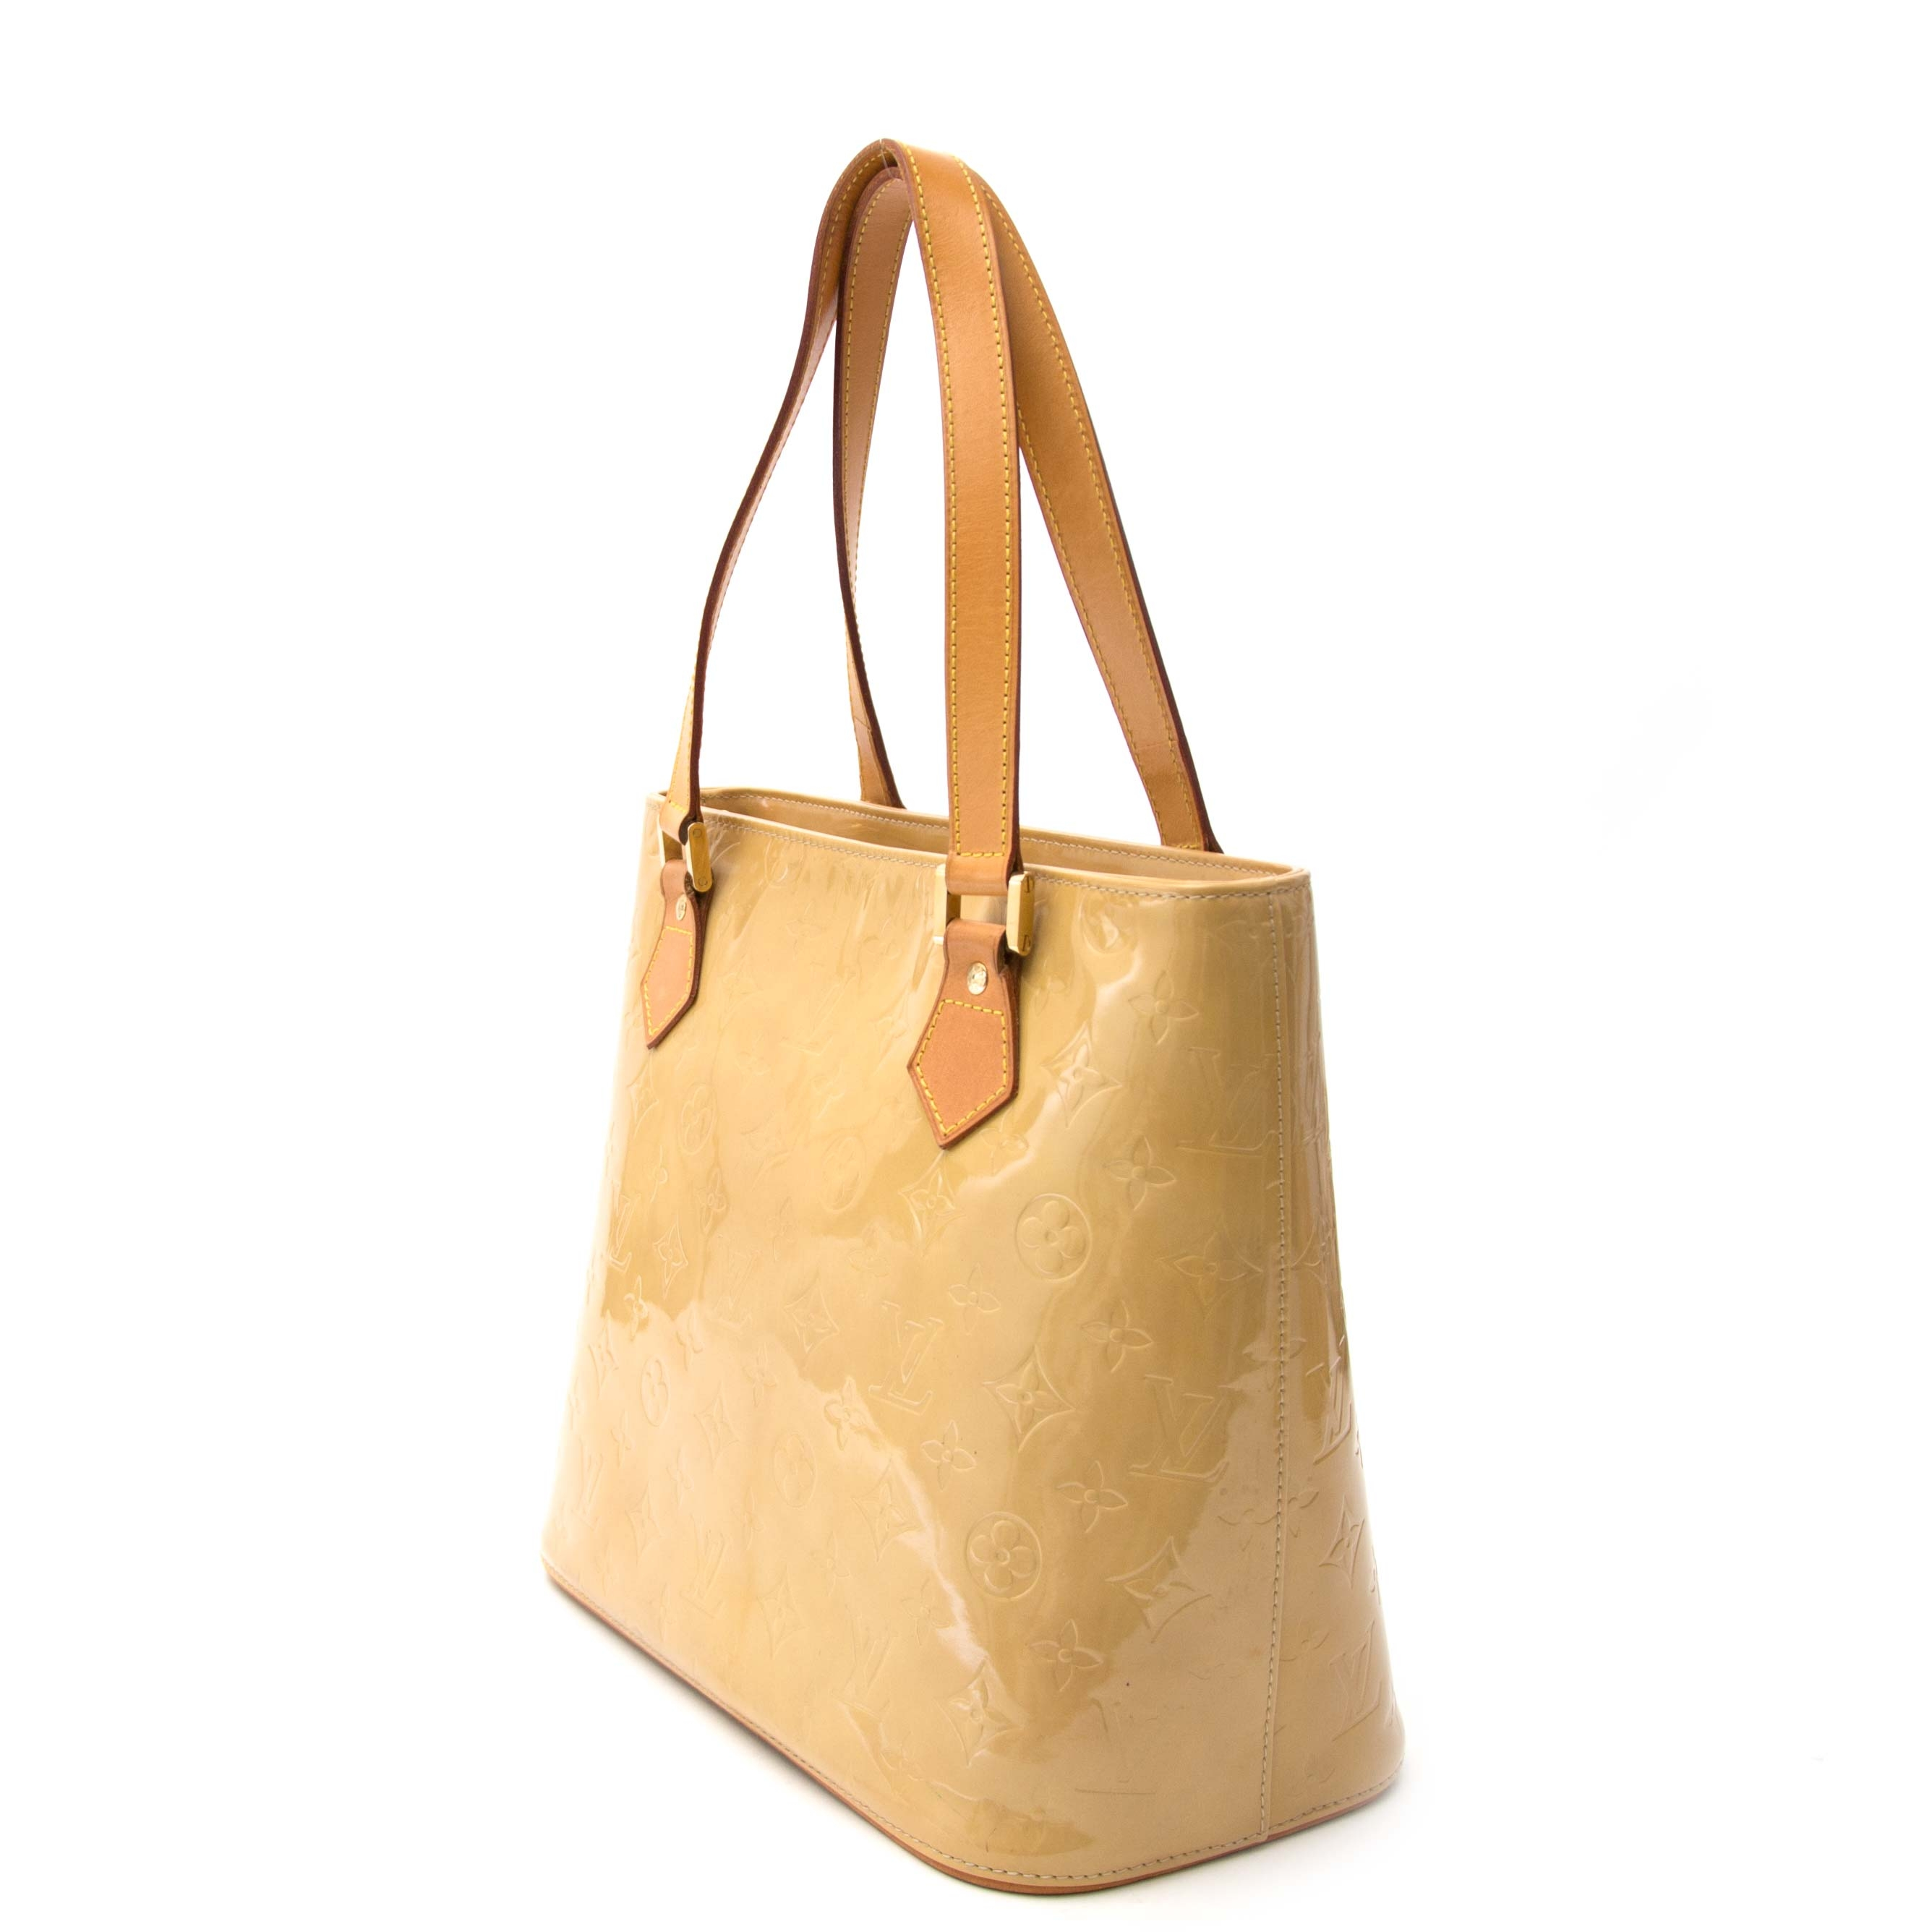 Louis Vuitton Beige Houston Vernis Monogram Bag Buy authentic designer Louis Vuitton secondhand bags at Labellov at the best price. Safe and secure shopping. Koop tweedehands authentieke Louis Vuitton tassen bij designer webwinkel labellov.